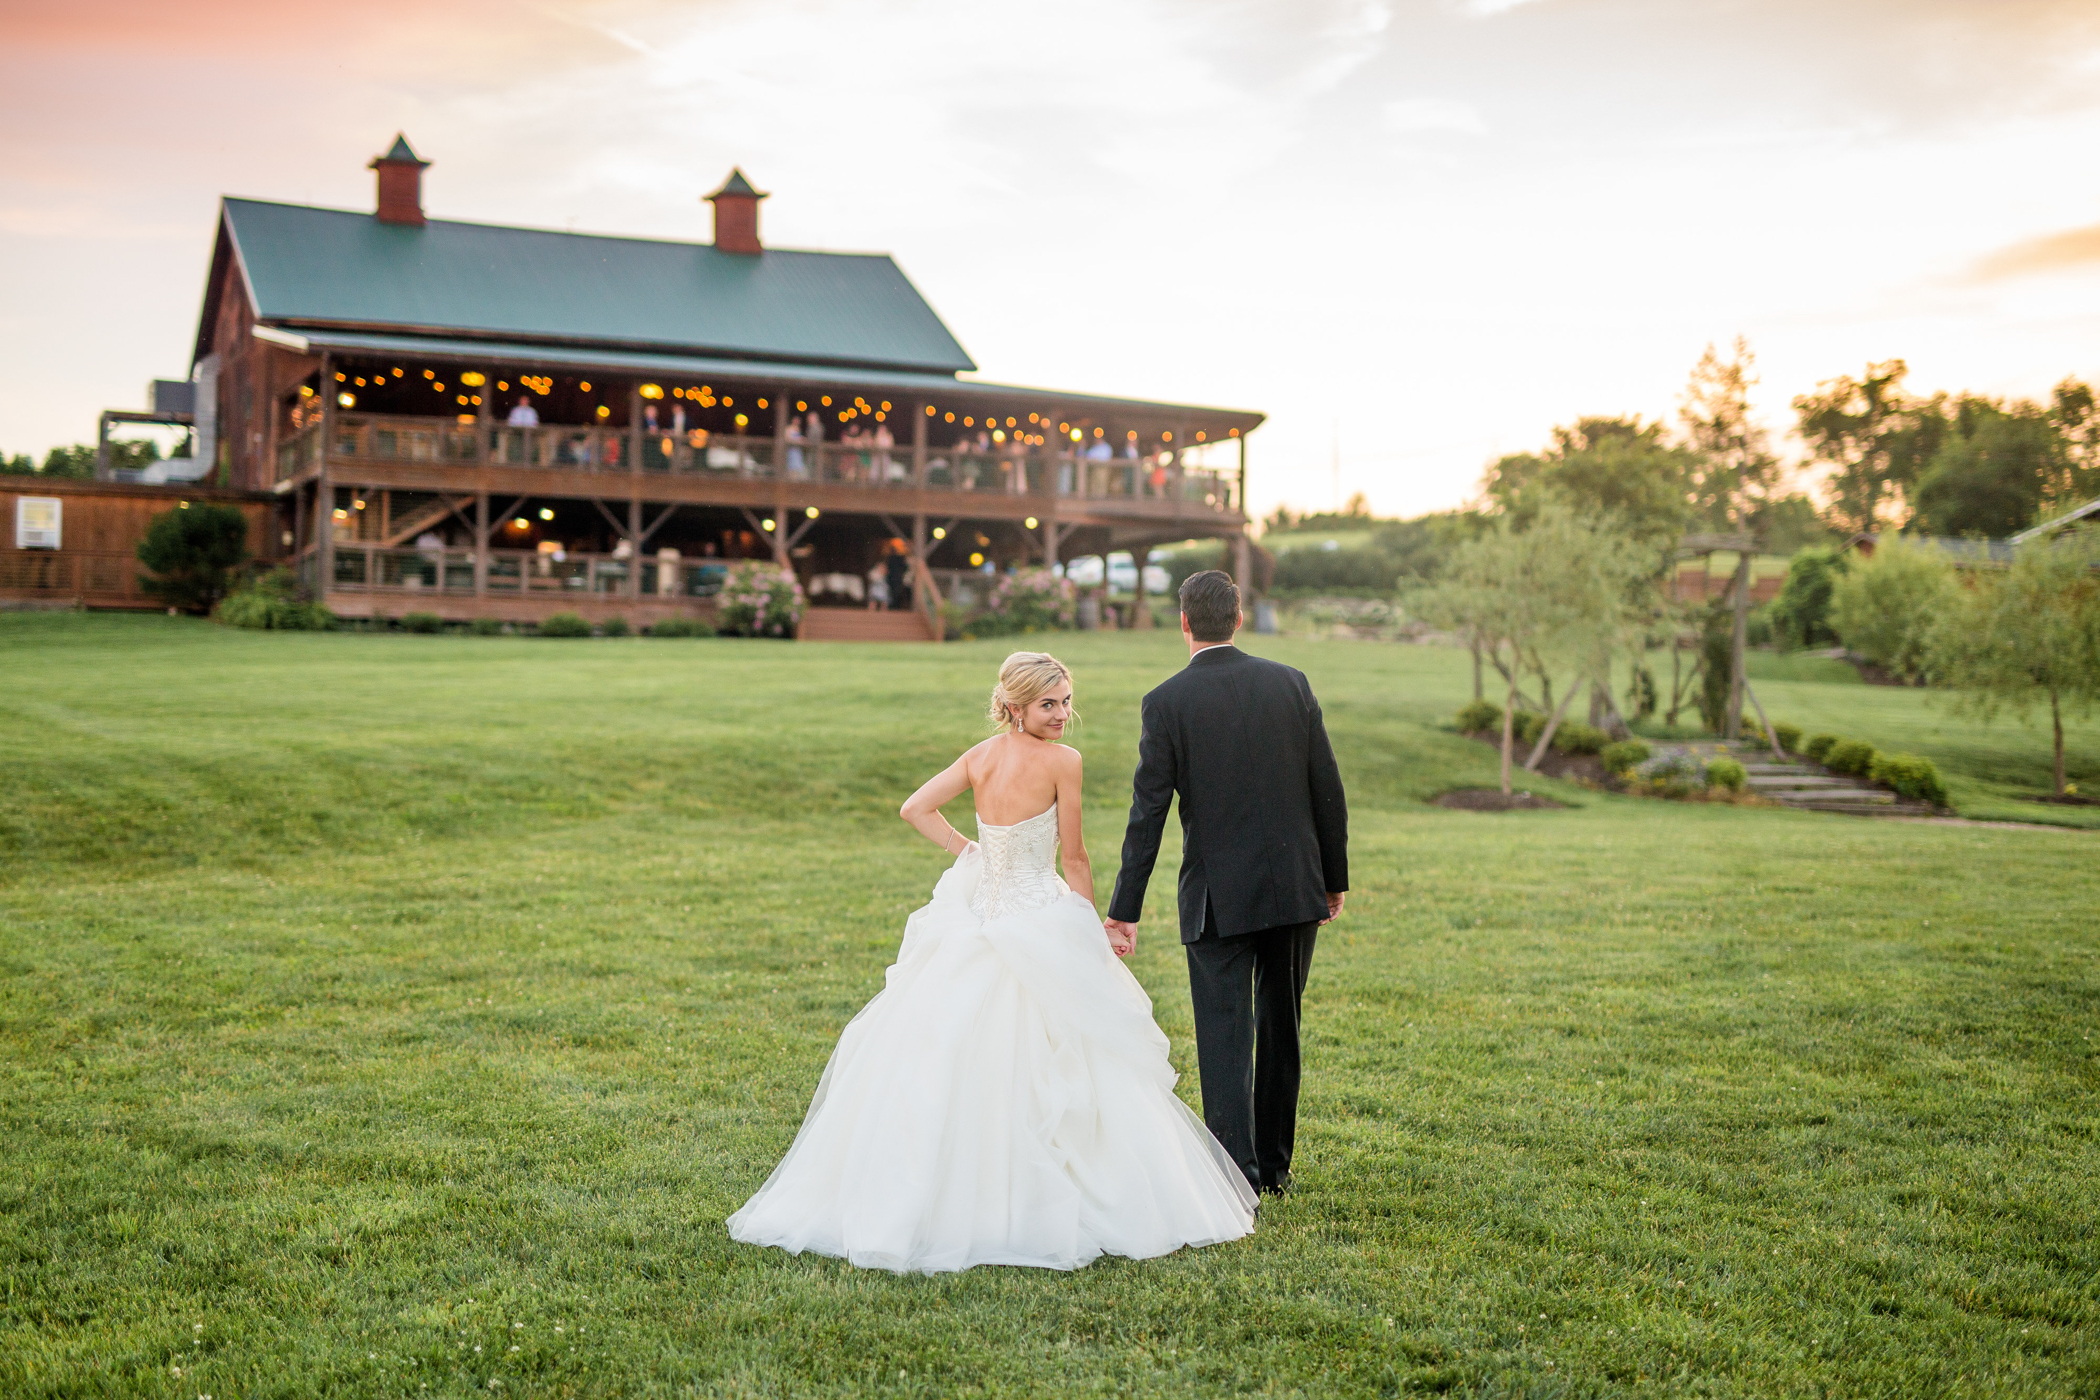 Lingrow Farms Weddings Barn Wedding